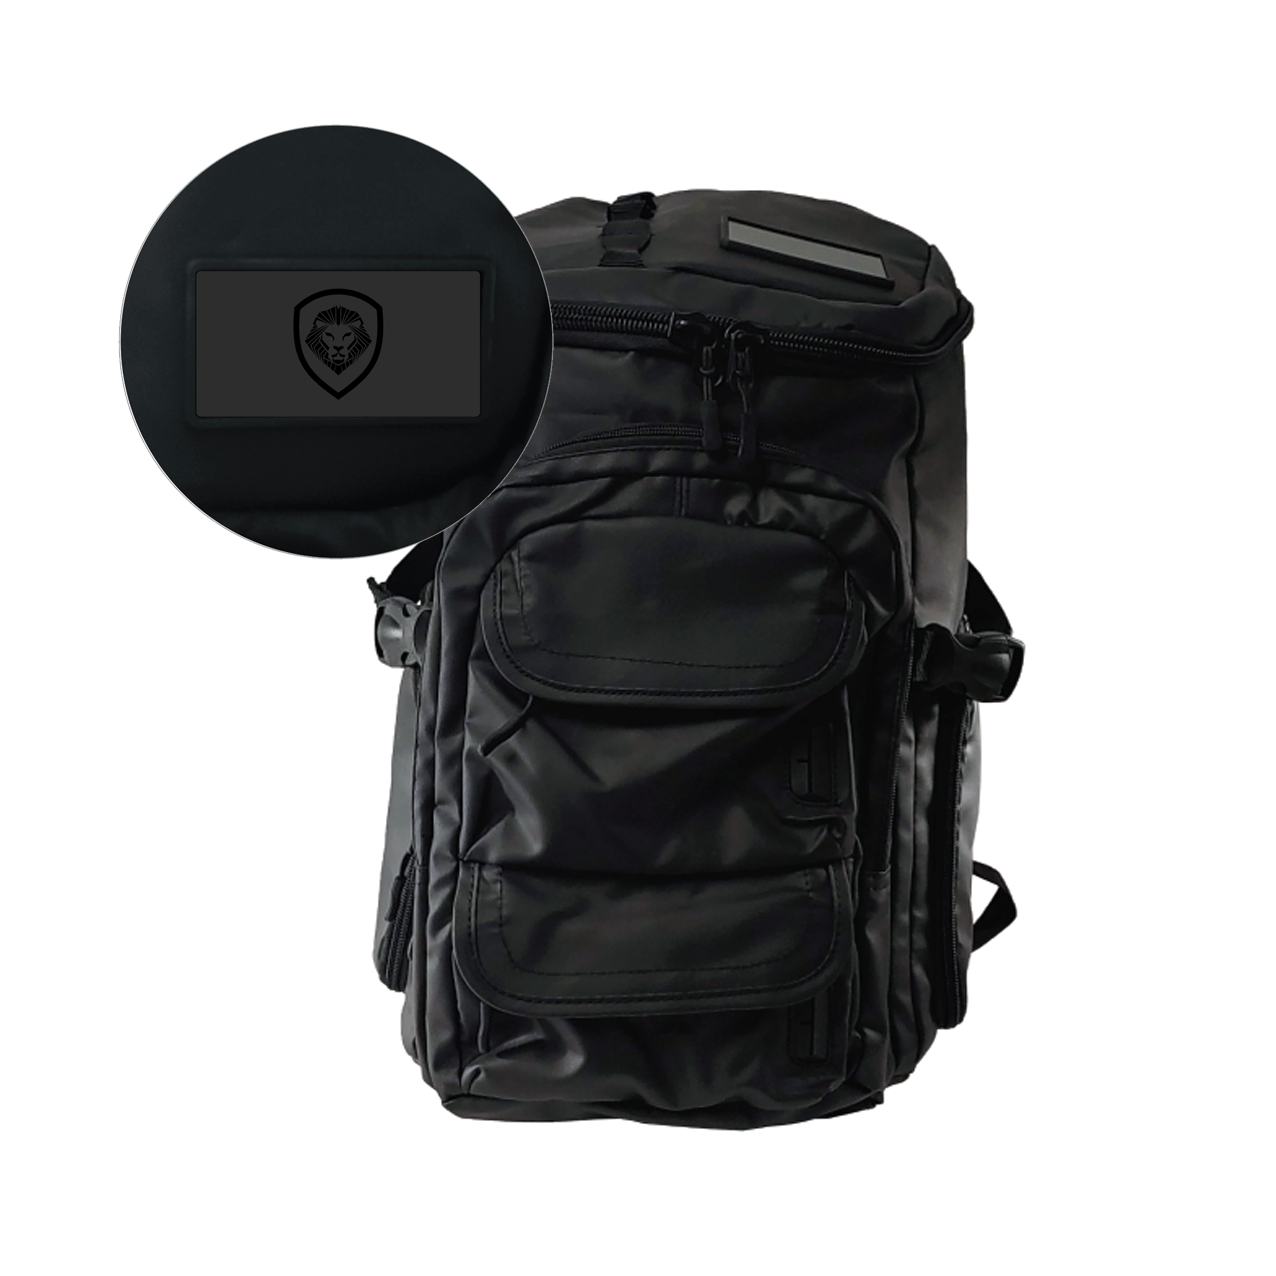 VT Black on Black Backpack